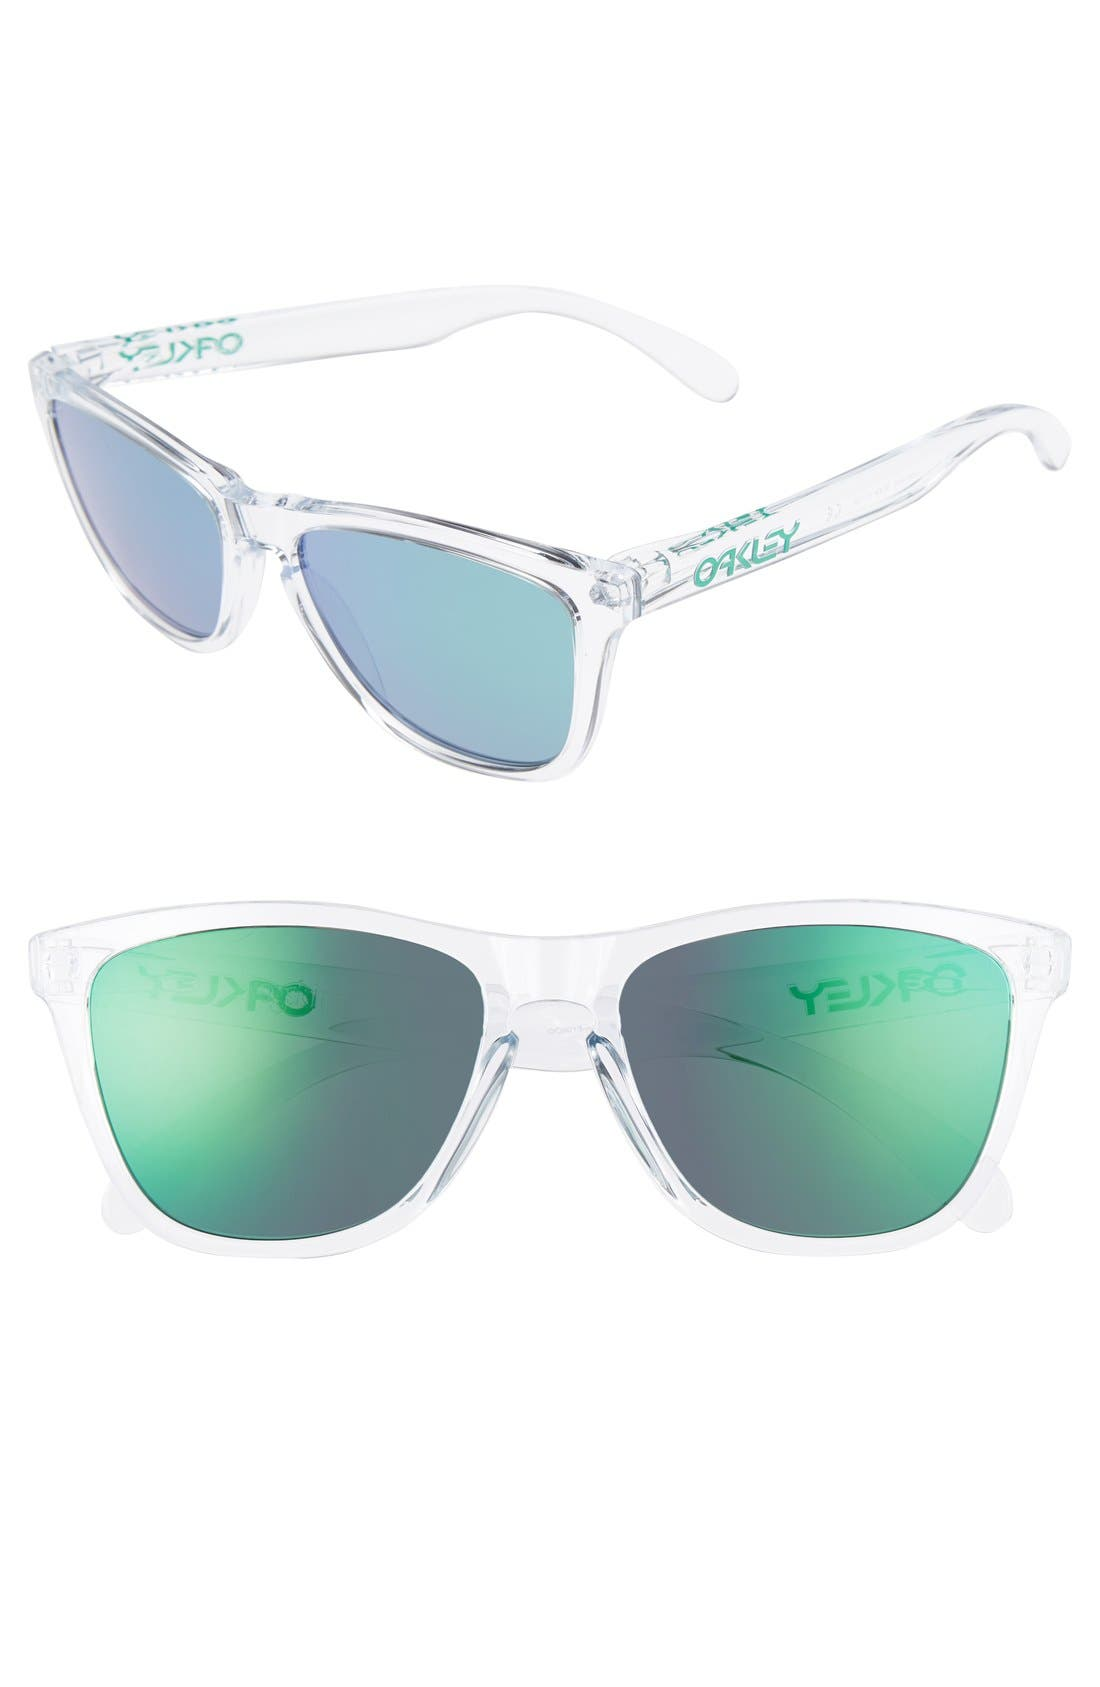 Frogskins<sup>®</sup> 55mm Sunglasses,                         Main,                         color, 100